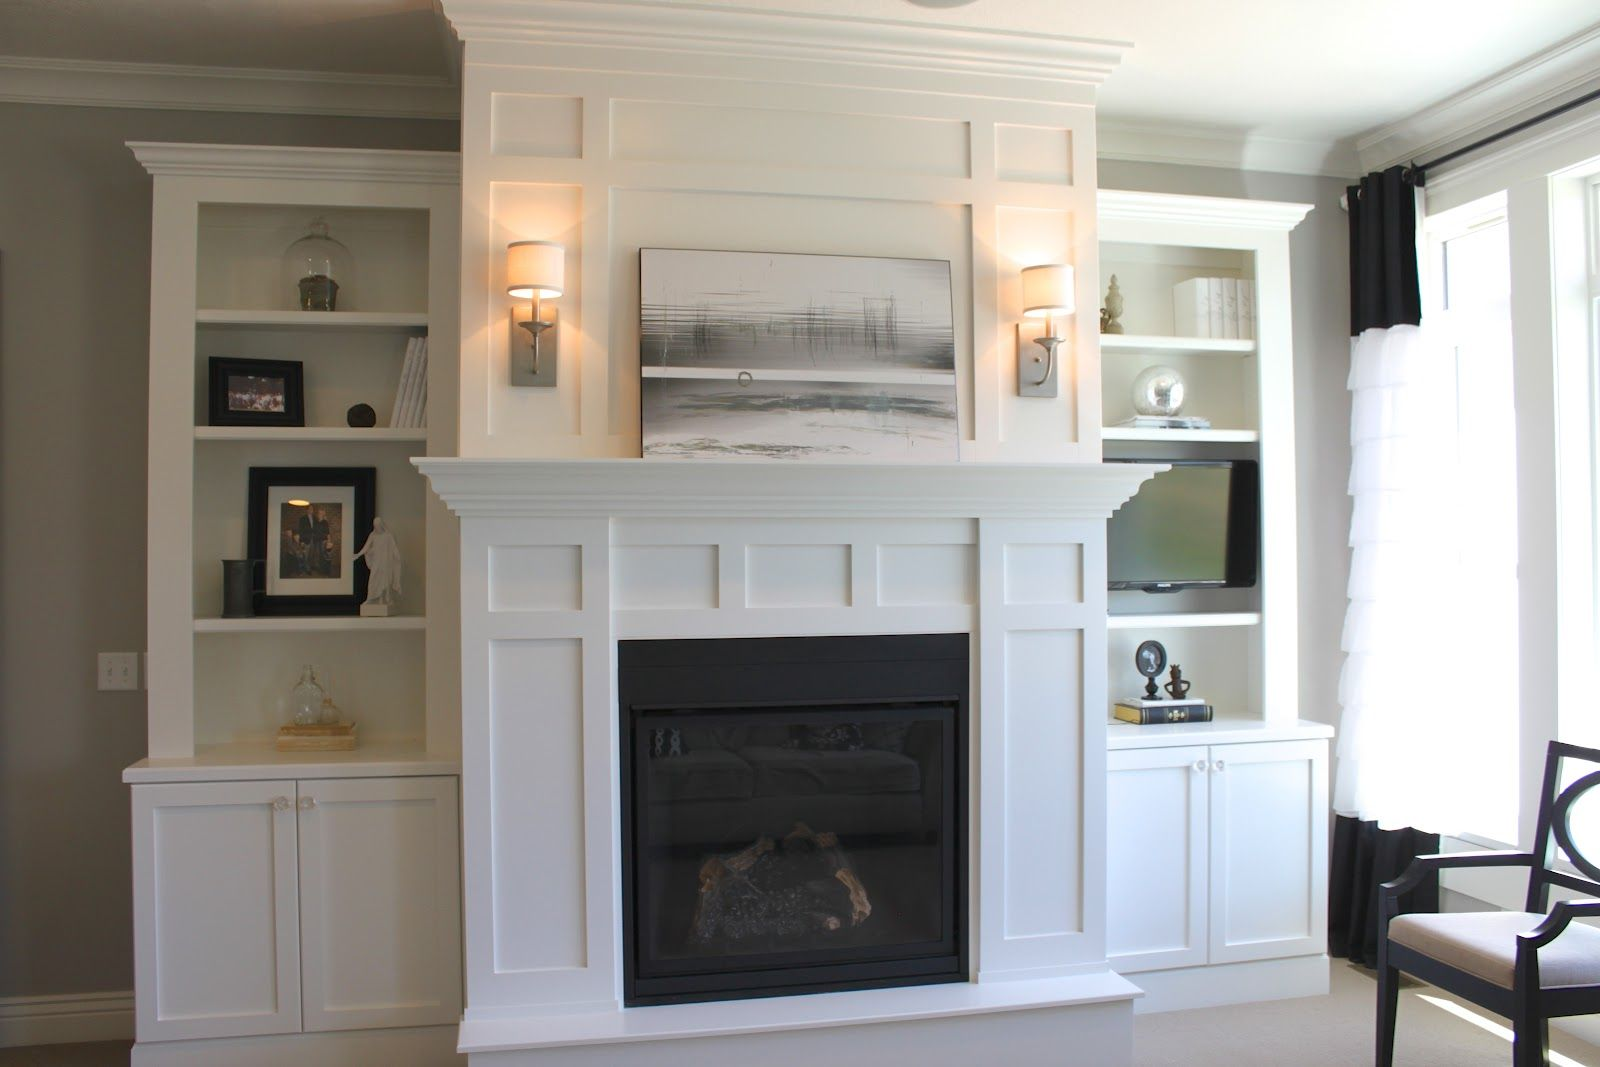 Amy S Casablanca Fireplace Book Shelves Built In Around Fireplace Fireplace Built Ins Bookshelves Around Fireplace